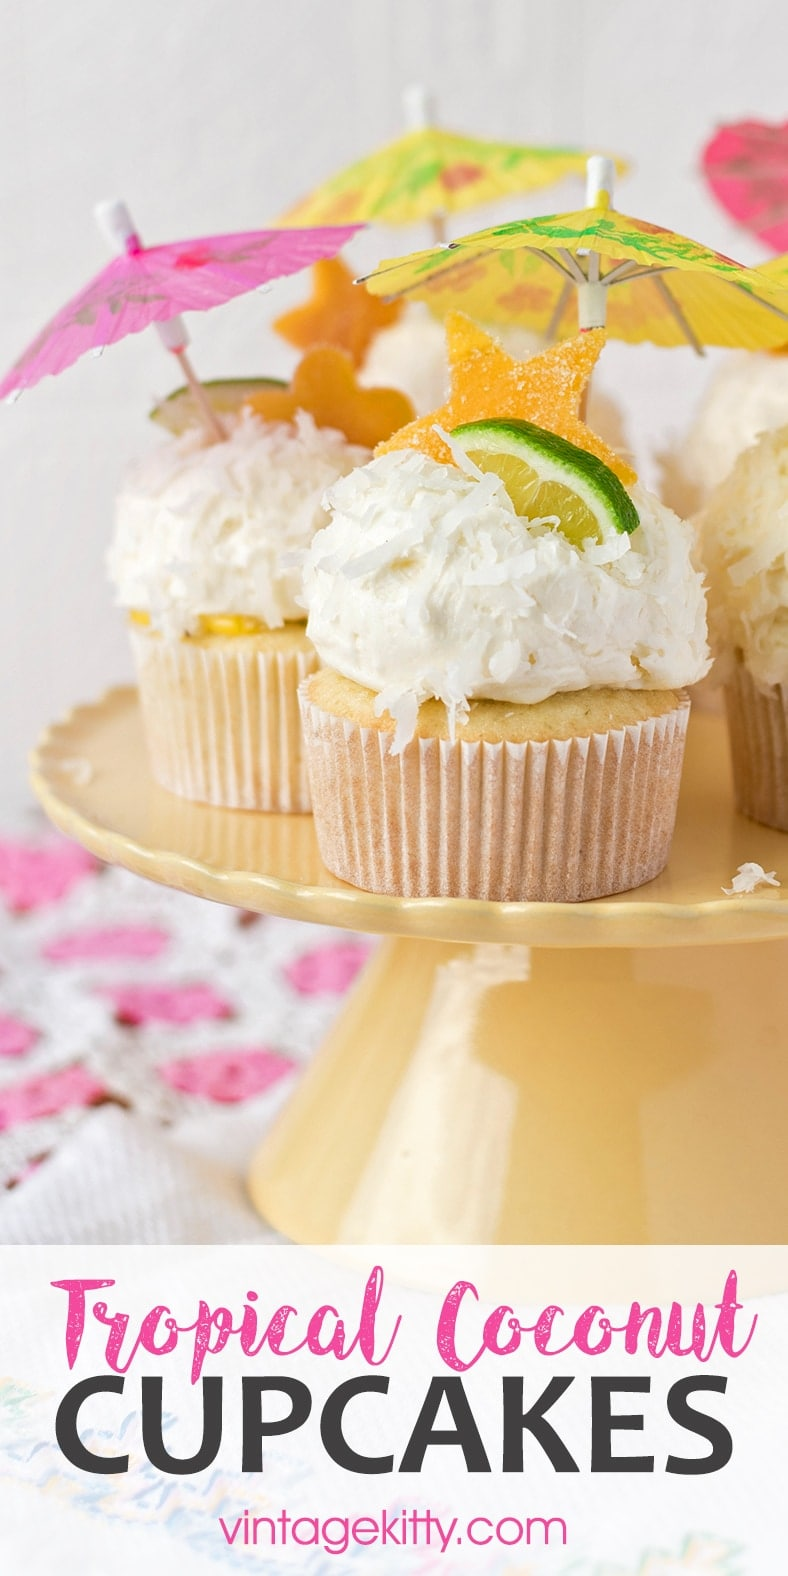 Tropical Coconut Cupcakes - Tropical Coconut Cupcakes with Mango Curd and Coconut Buttercream